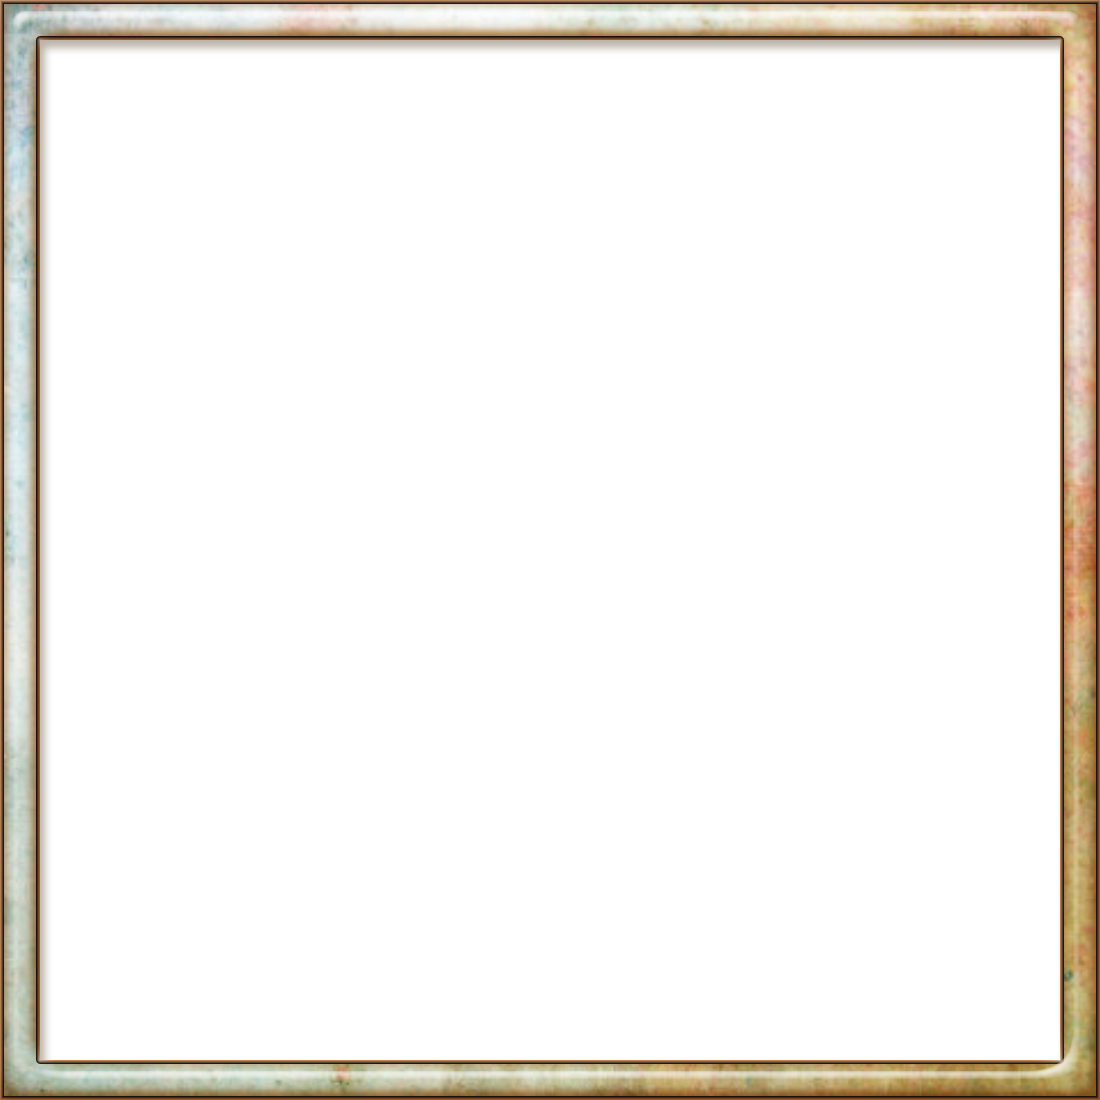 White square frame png. Transparent pictures free icons